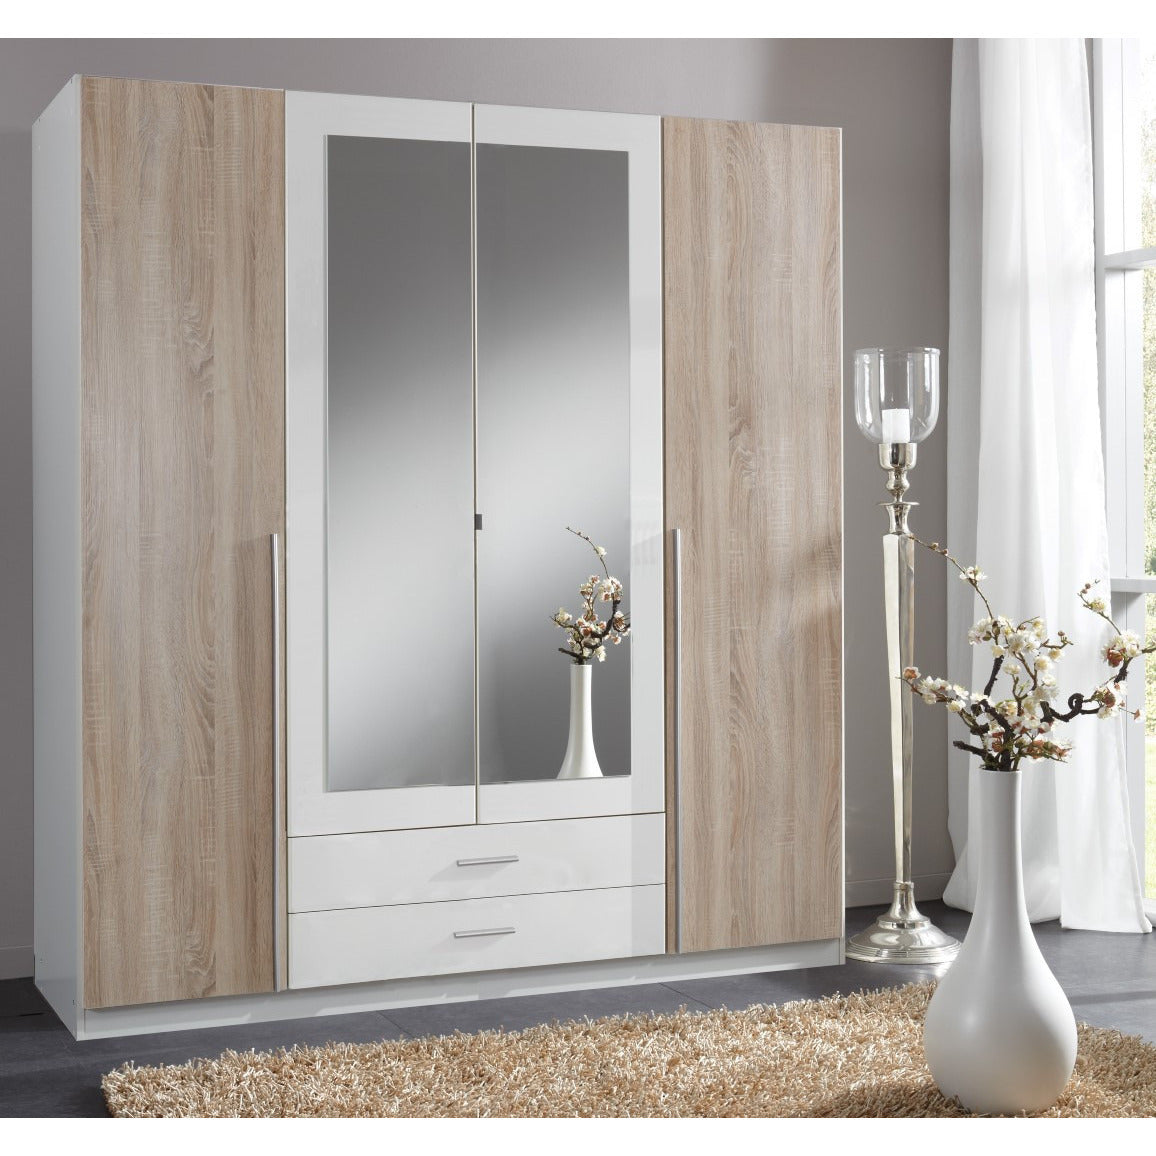 German Made Bedroom Furniture. Washed Oak U0026 White.